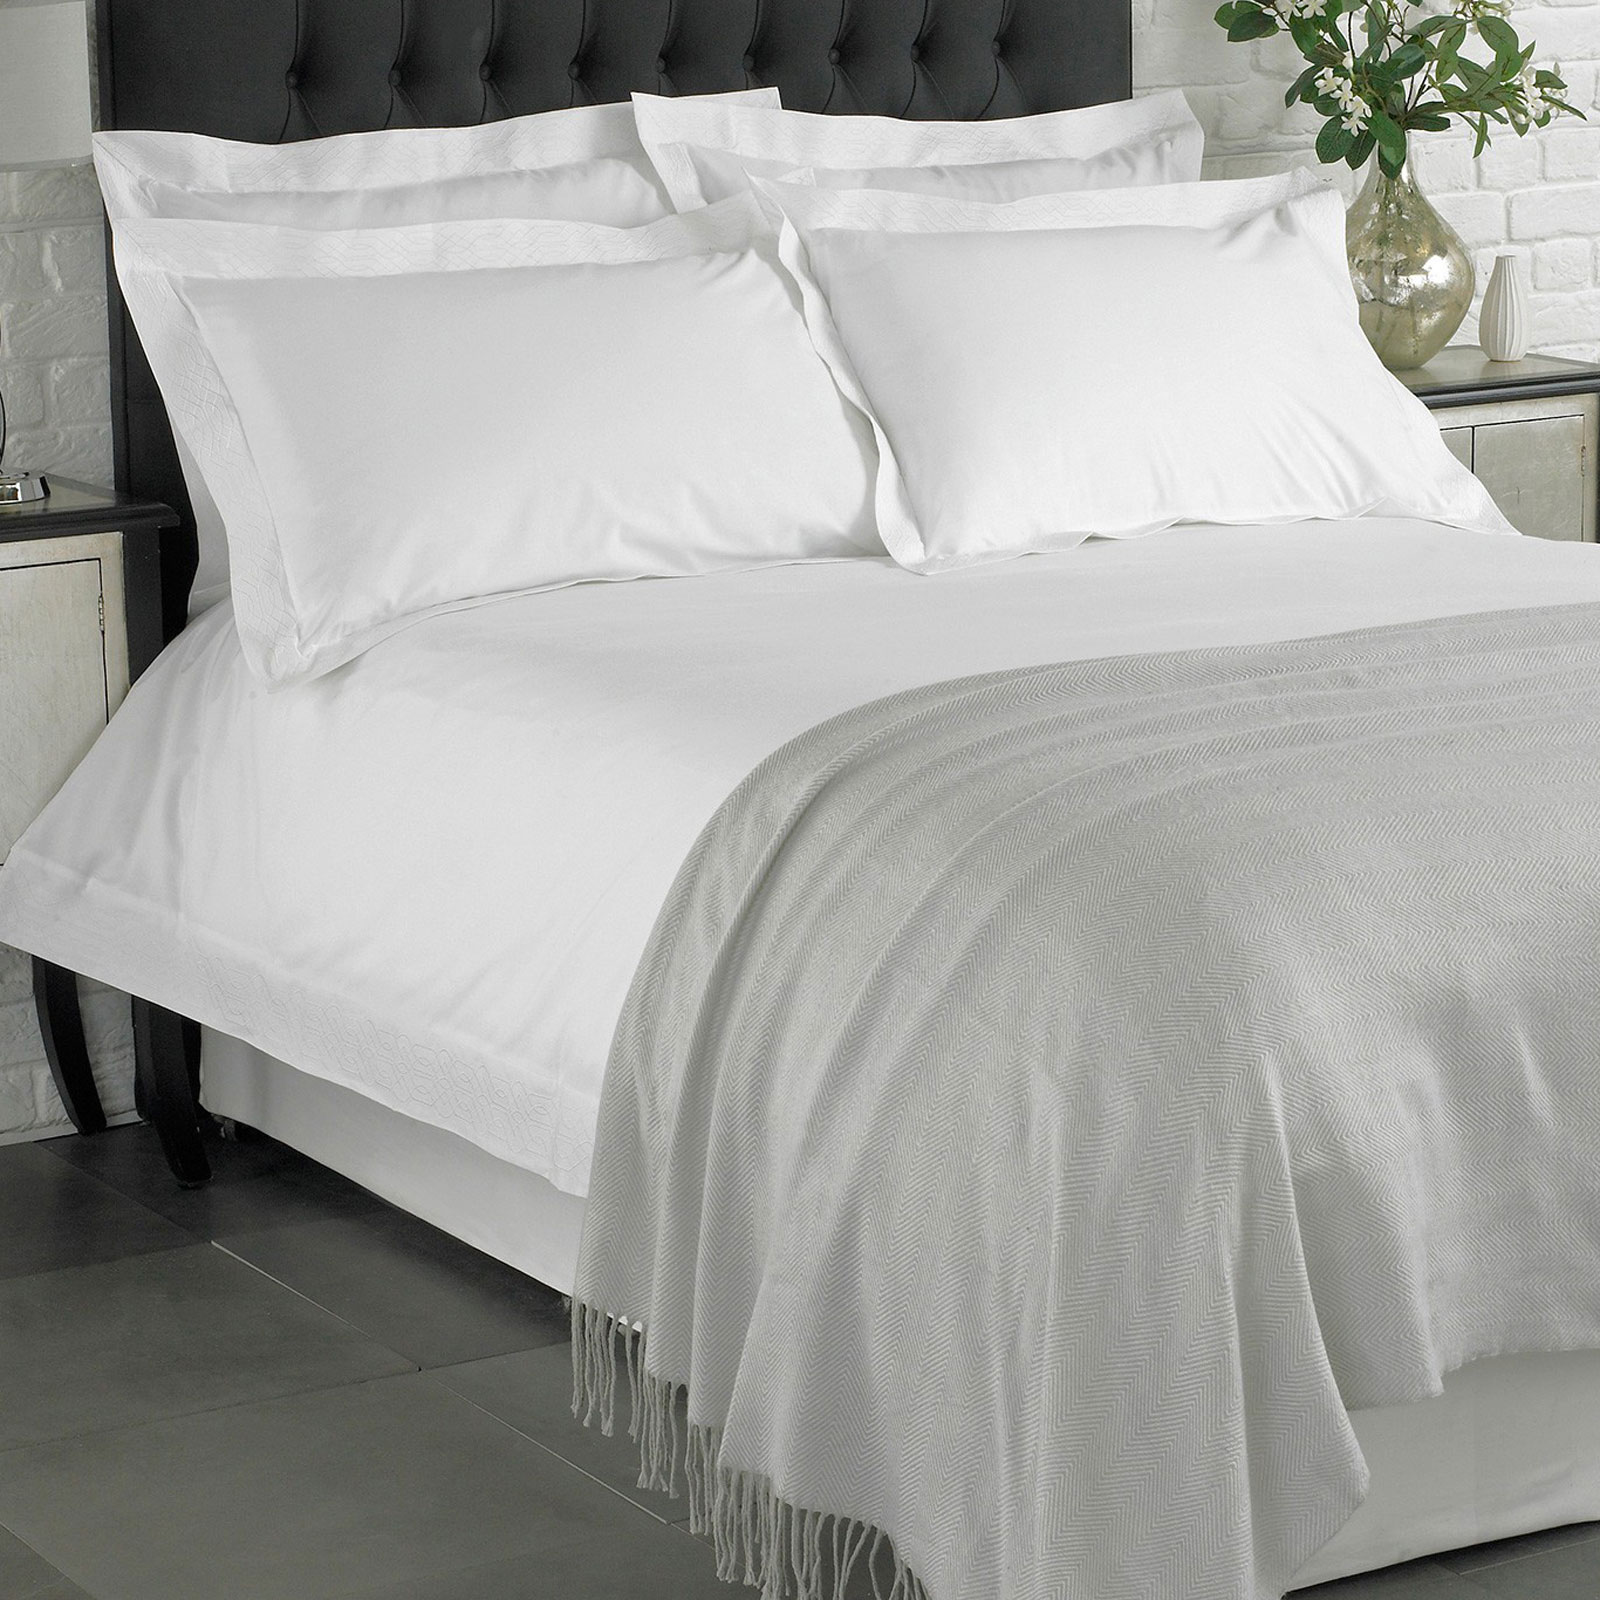 100 cotton white duvet cover luxury 200 thread count embroidered bedding set ebay. Black Bedroom Furniture Sets. Home Design Ideas